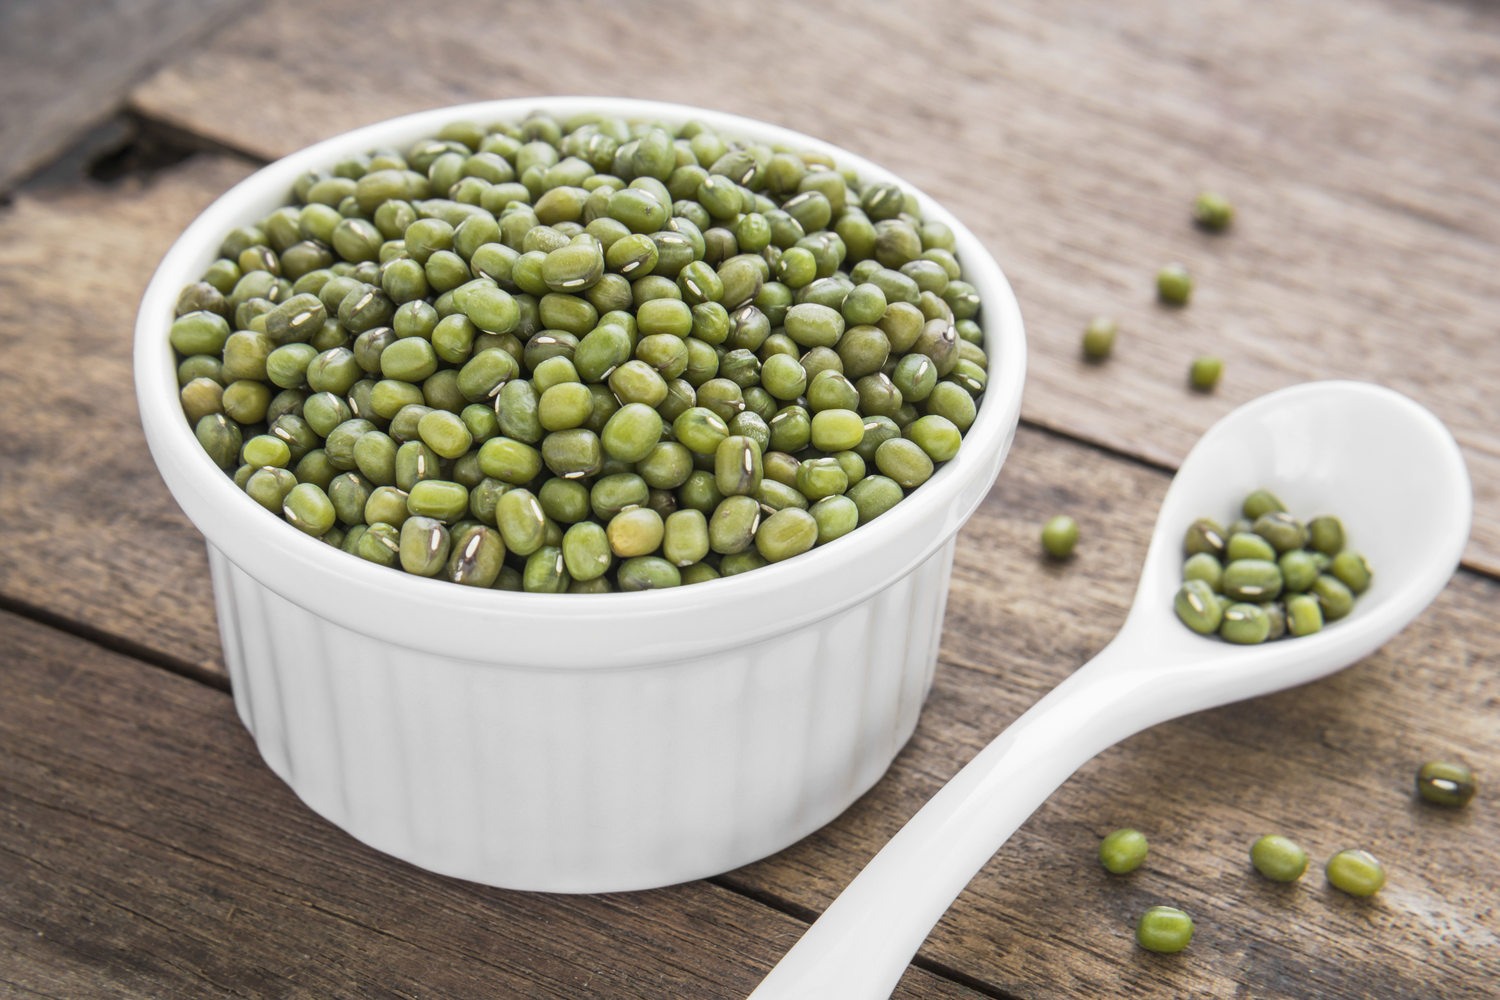 Photo of mung beansby Amarita/iStock / Getty Images